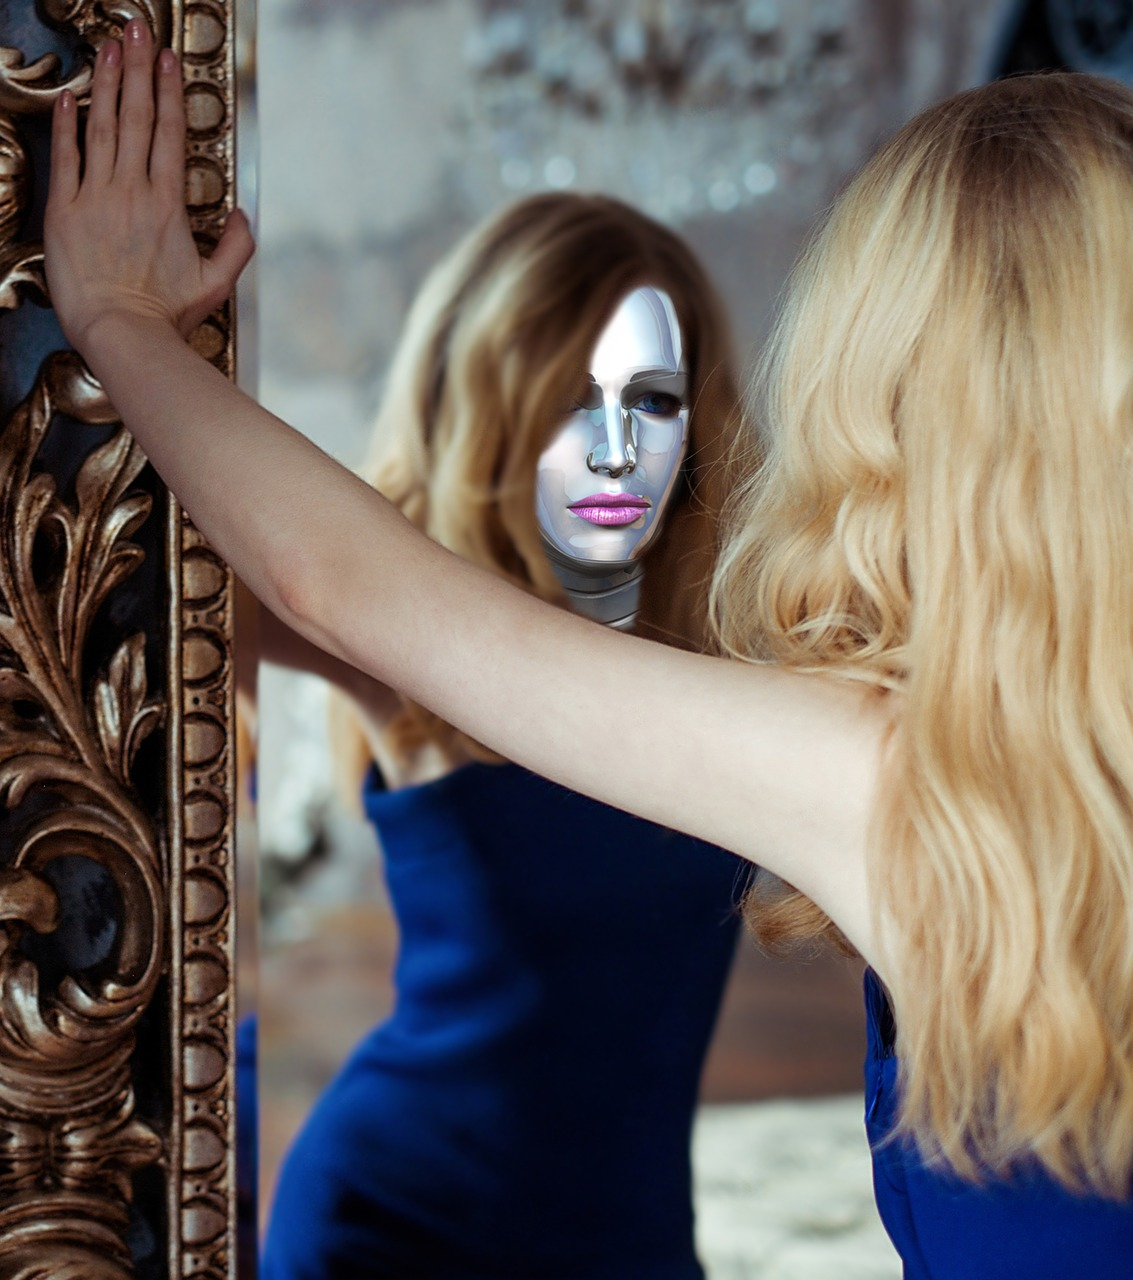 The reality of living with Narcissistic Abuse